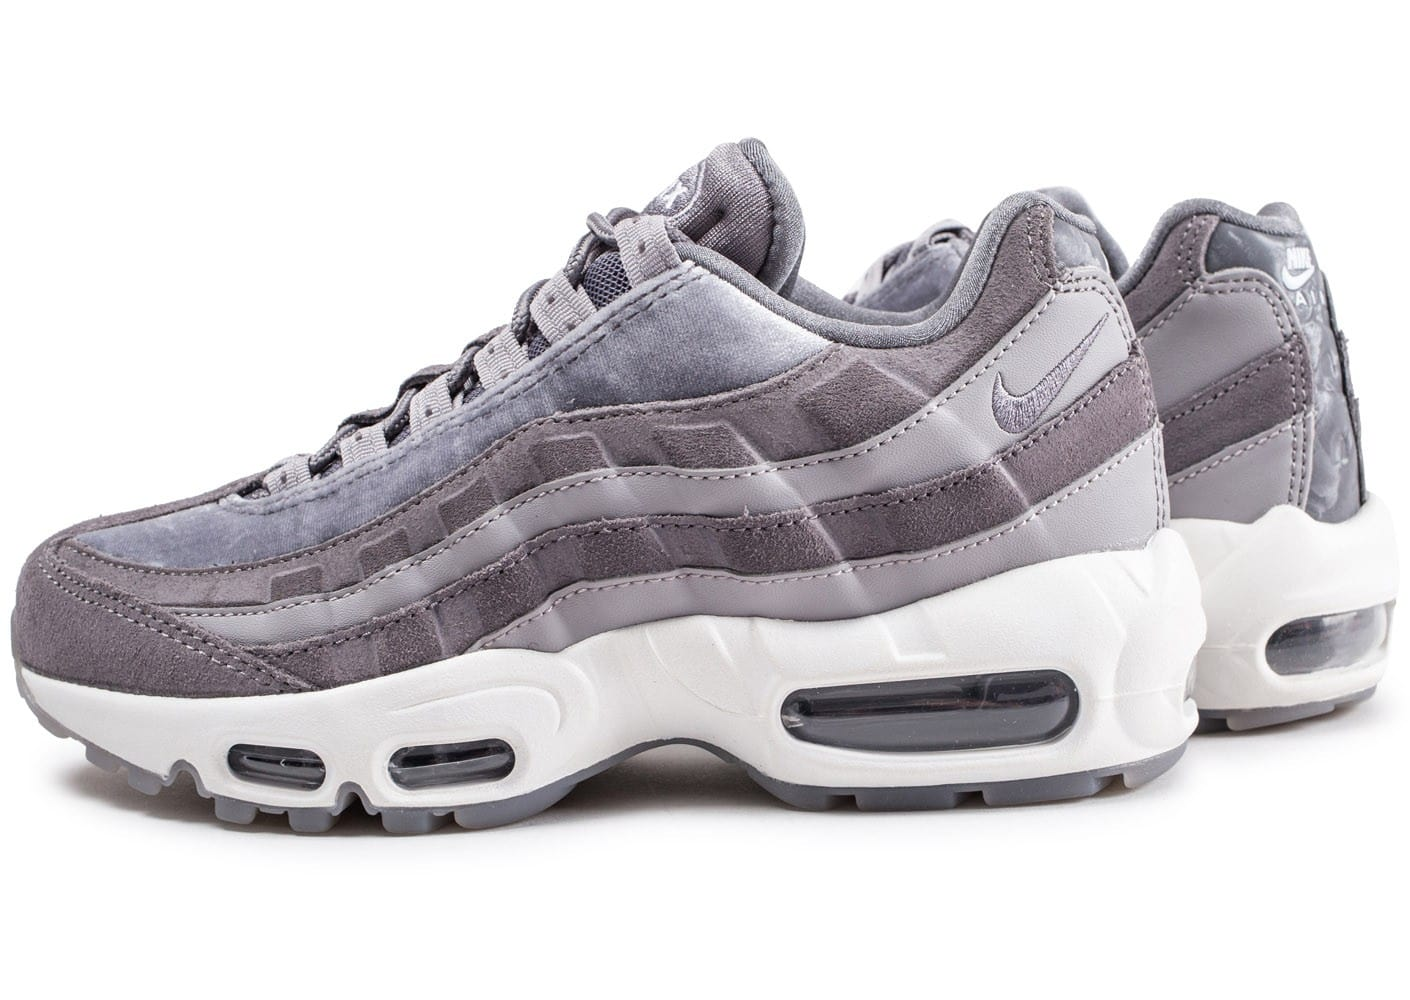 air max 95 grise claire femme nike air max 95 gris clair femme chaussures. Black Bedroom Furniture Sets. Home Design Ideas